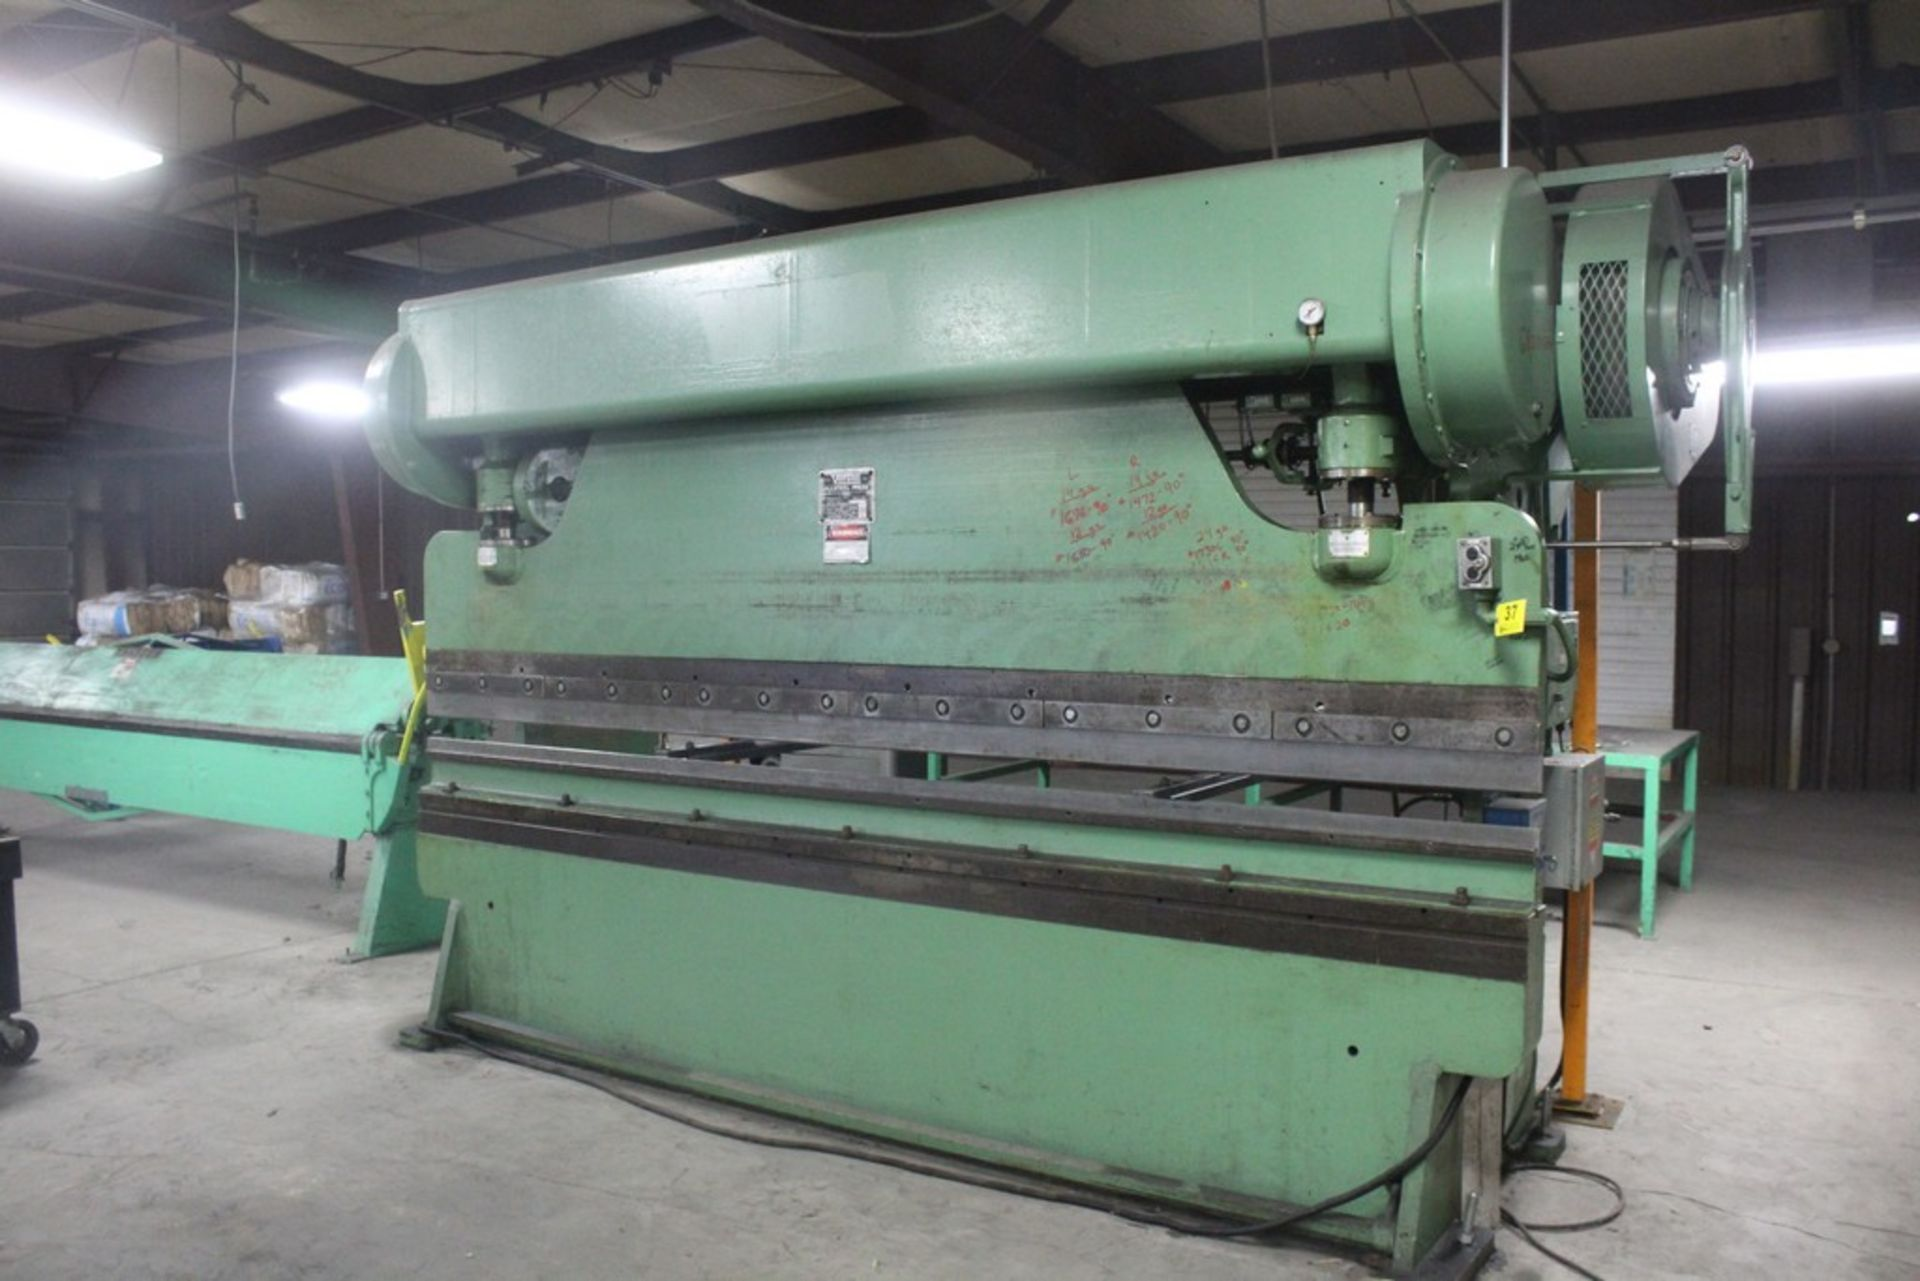 Lot 37 - Verson Model 2010-65 Mechanical Power Press Brake, Serial Number: 20844 90 Ton - 12' Overall - Air